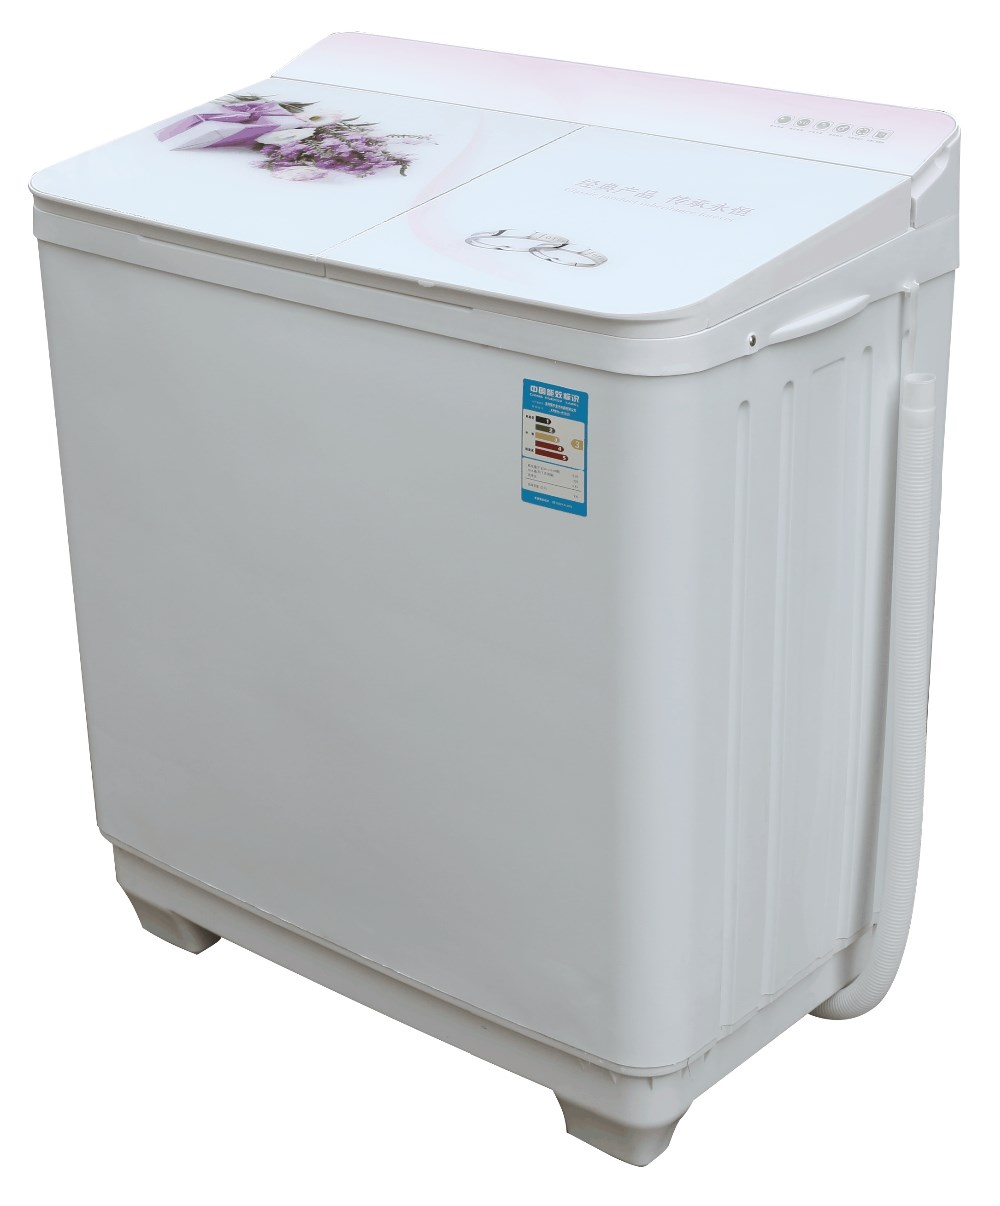 Rong Sheng Brand Zhen Ai Chuan Cheng XPB96-9188S 9.6KG capacity Twin-tub semi-automatic washing machine for home use